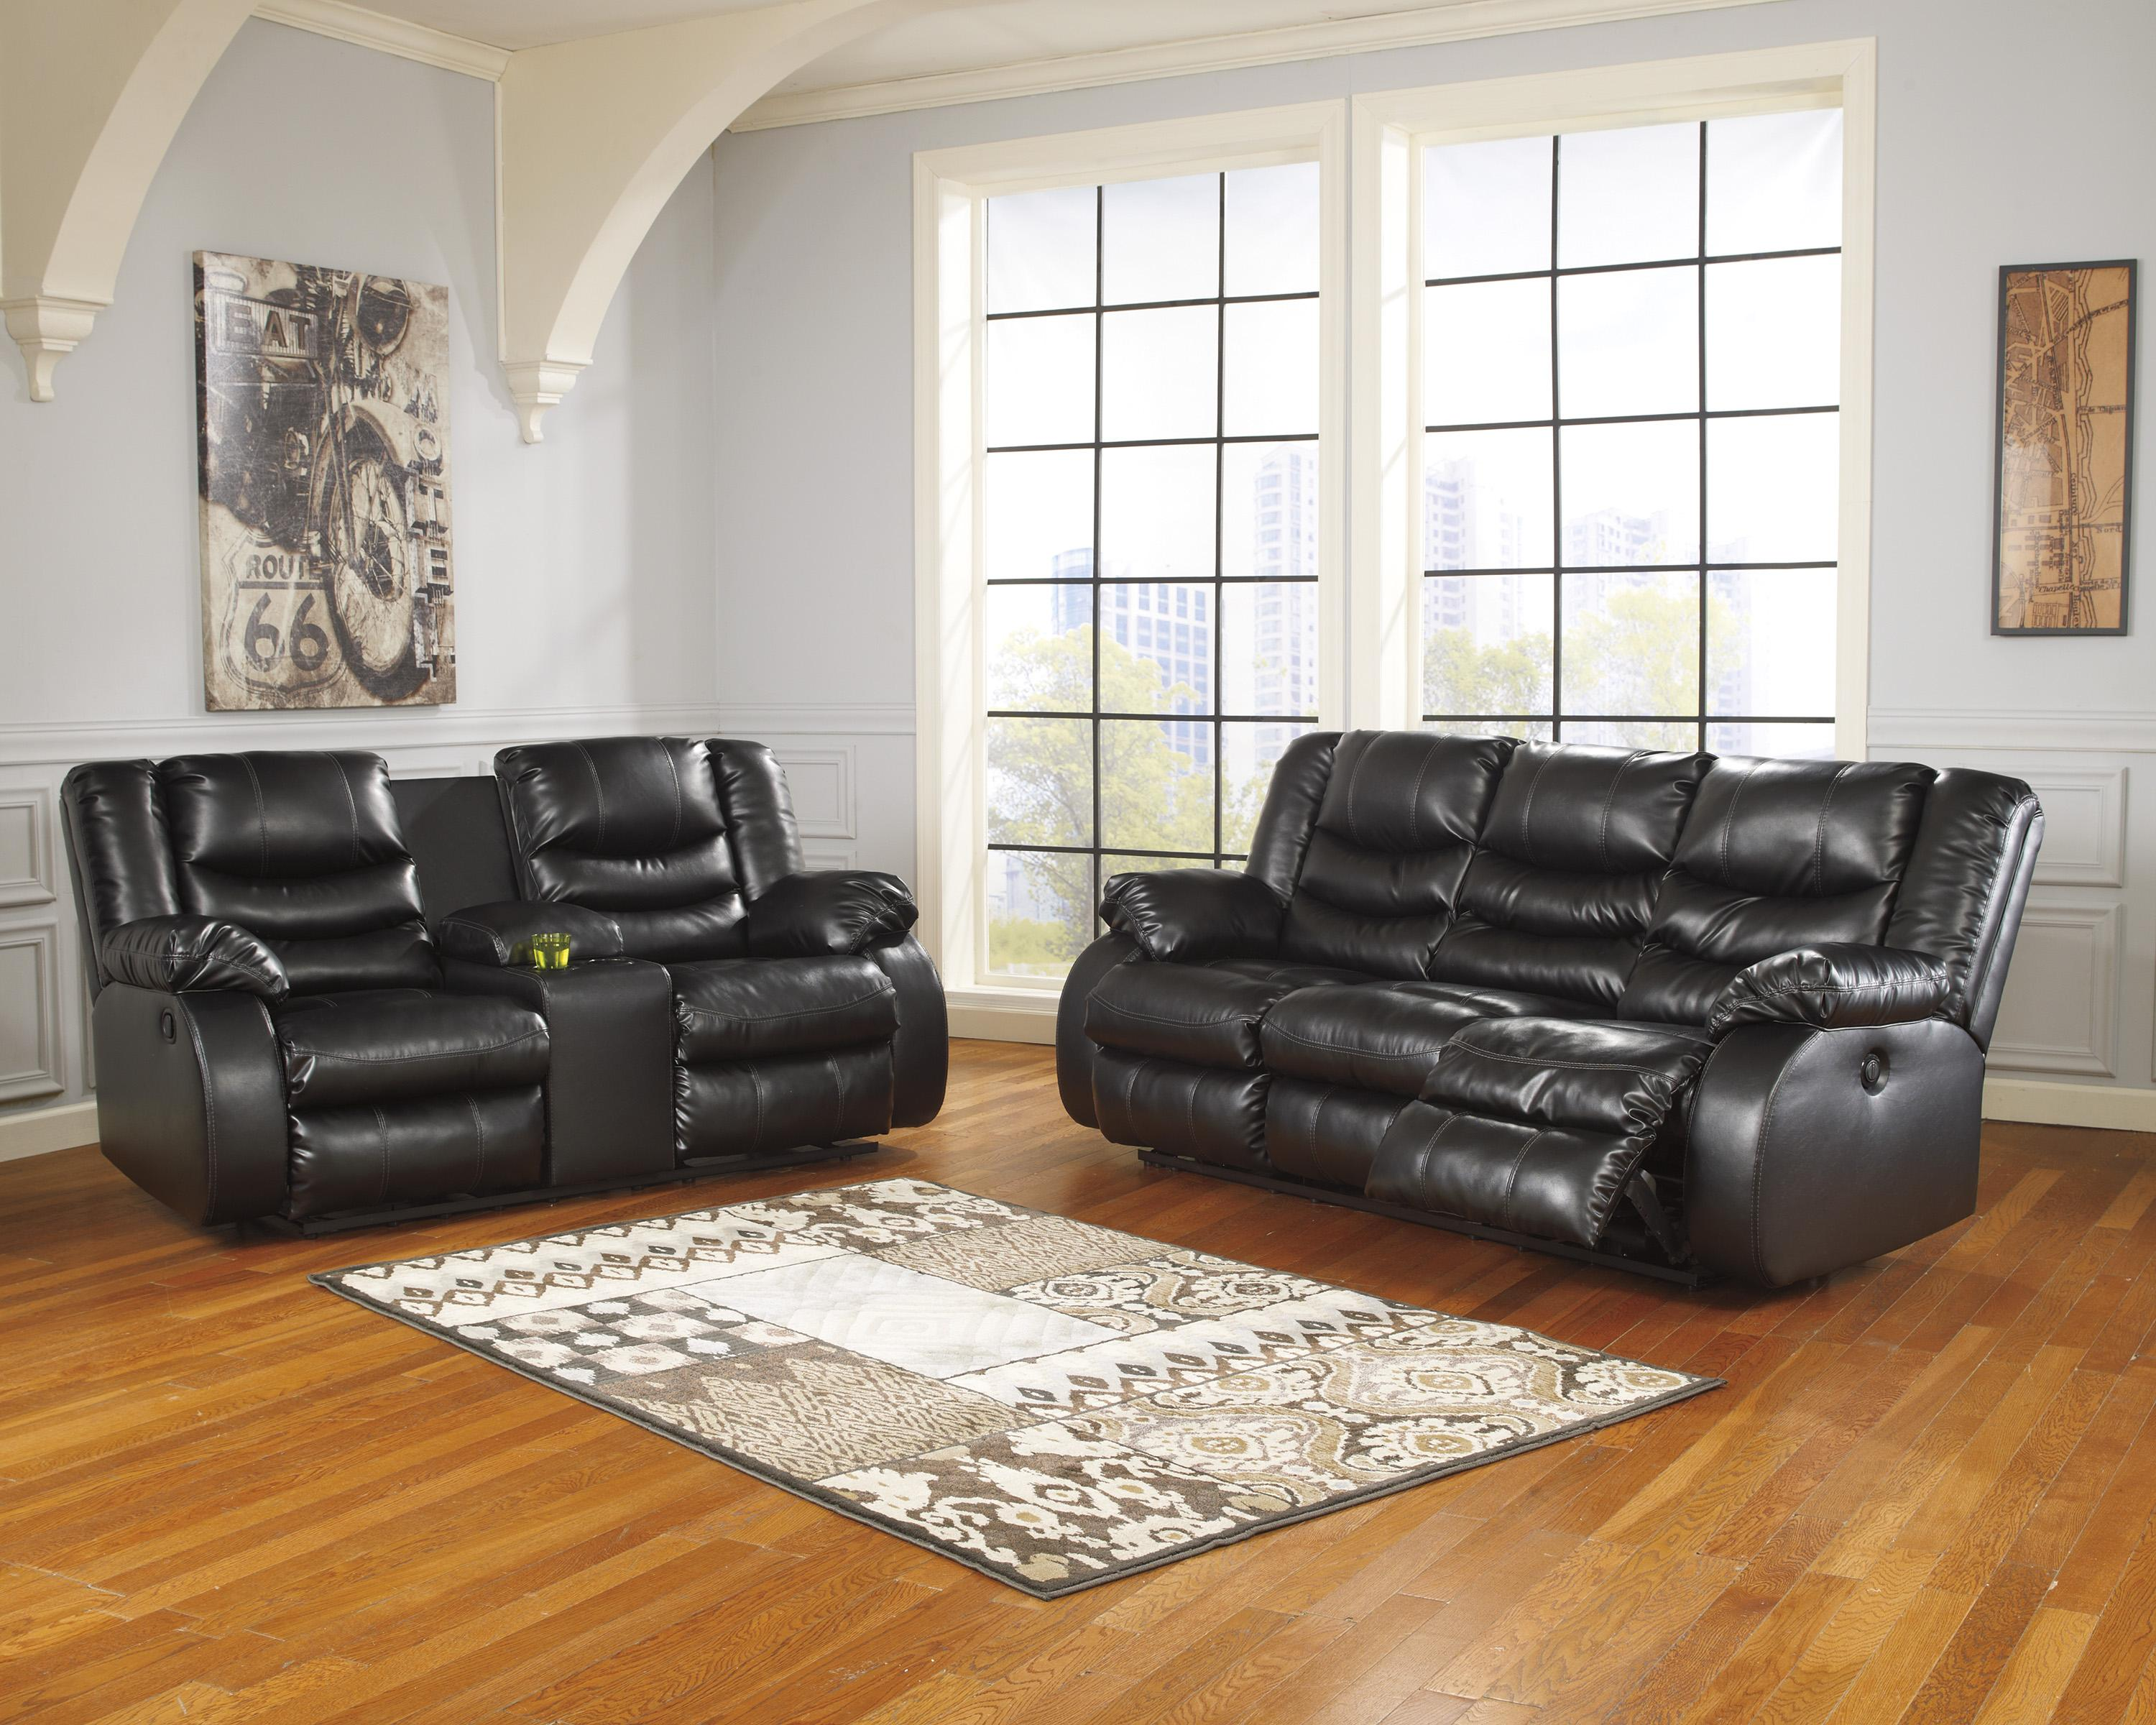 benchcraft linebacker durablend black reclining sofa with pillow arms wayside furniture reclining sofa